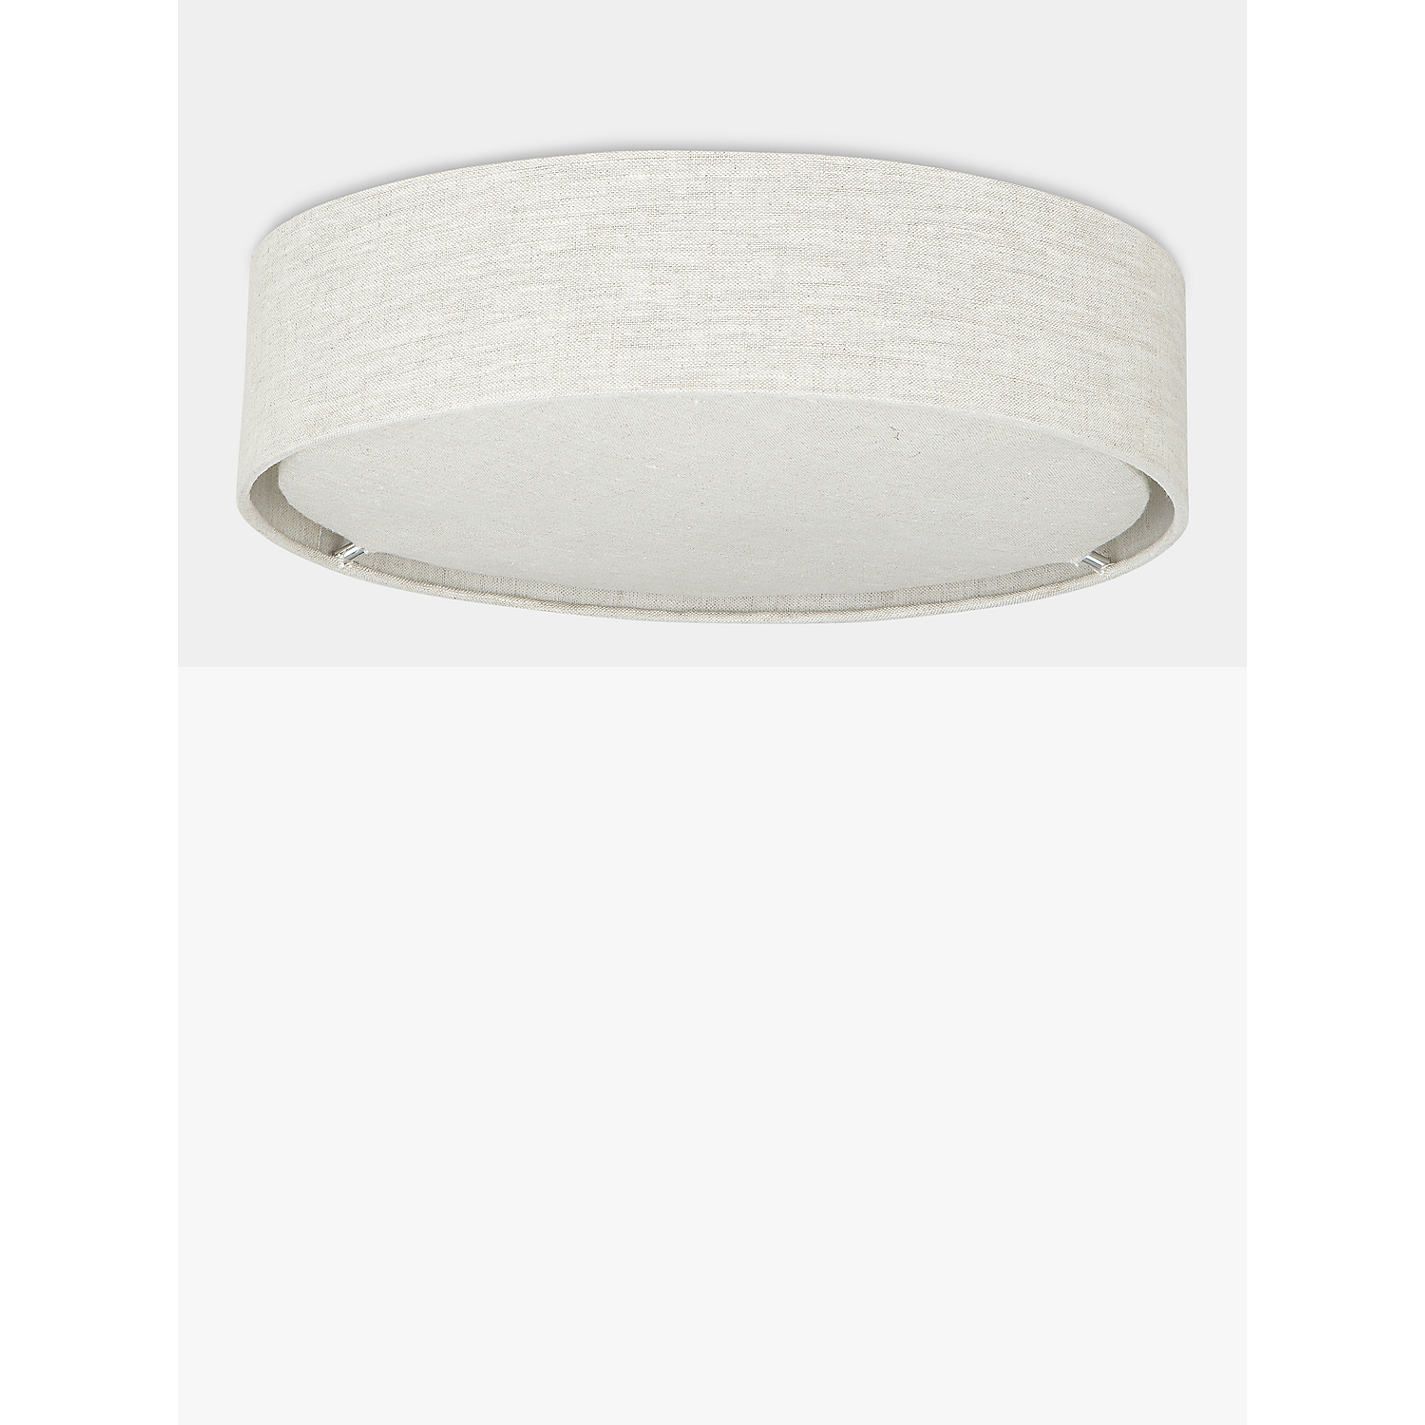 Buy john lewis samantha linen flush ceiling light john lewis buy john lewis samantha linen flush ceiling light online at johnlewis aloadofball Gallery